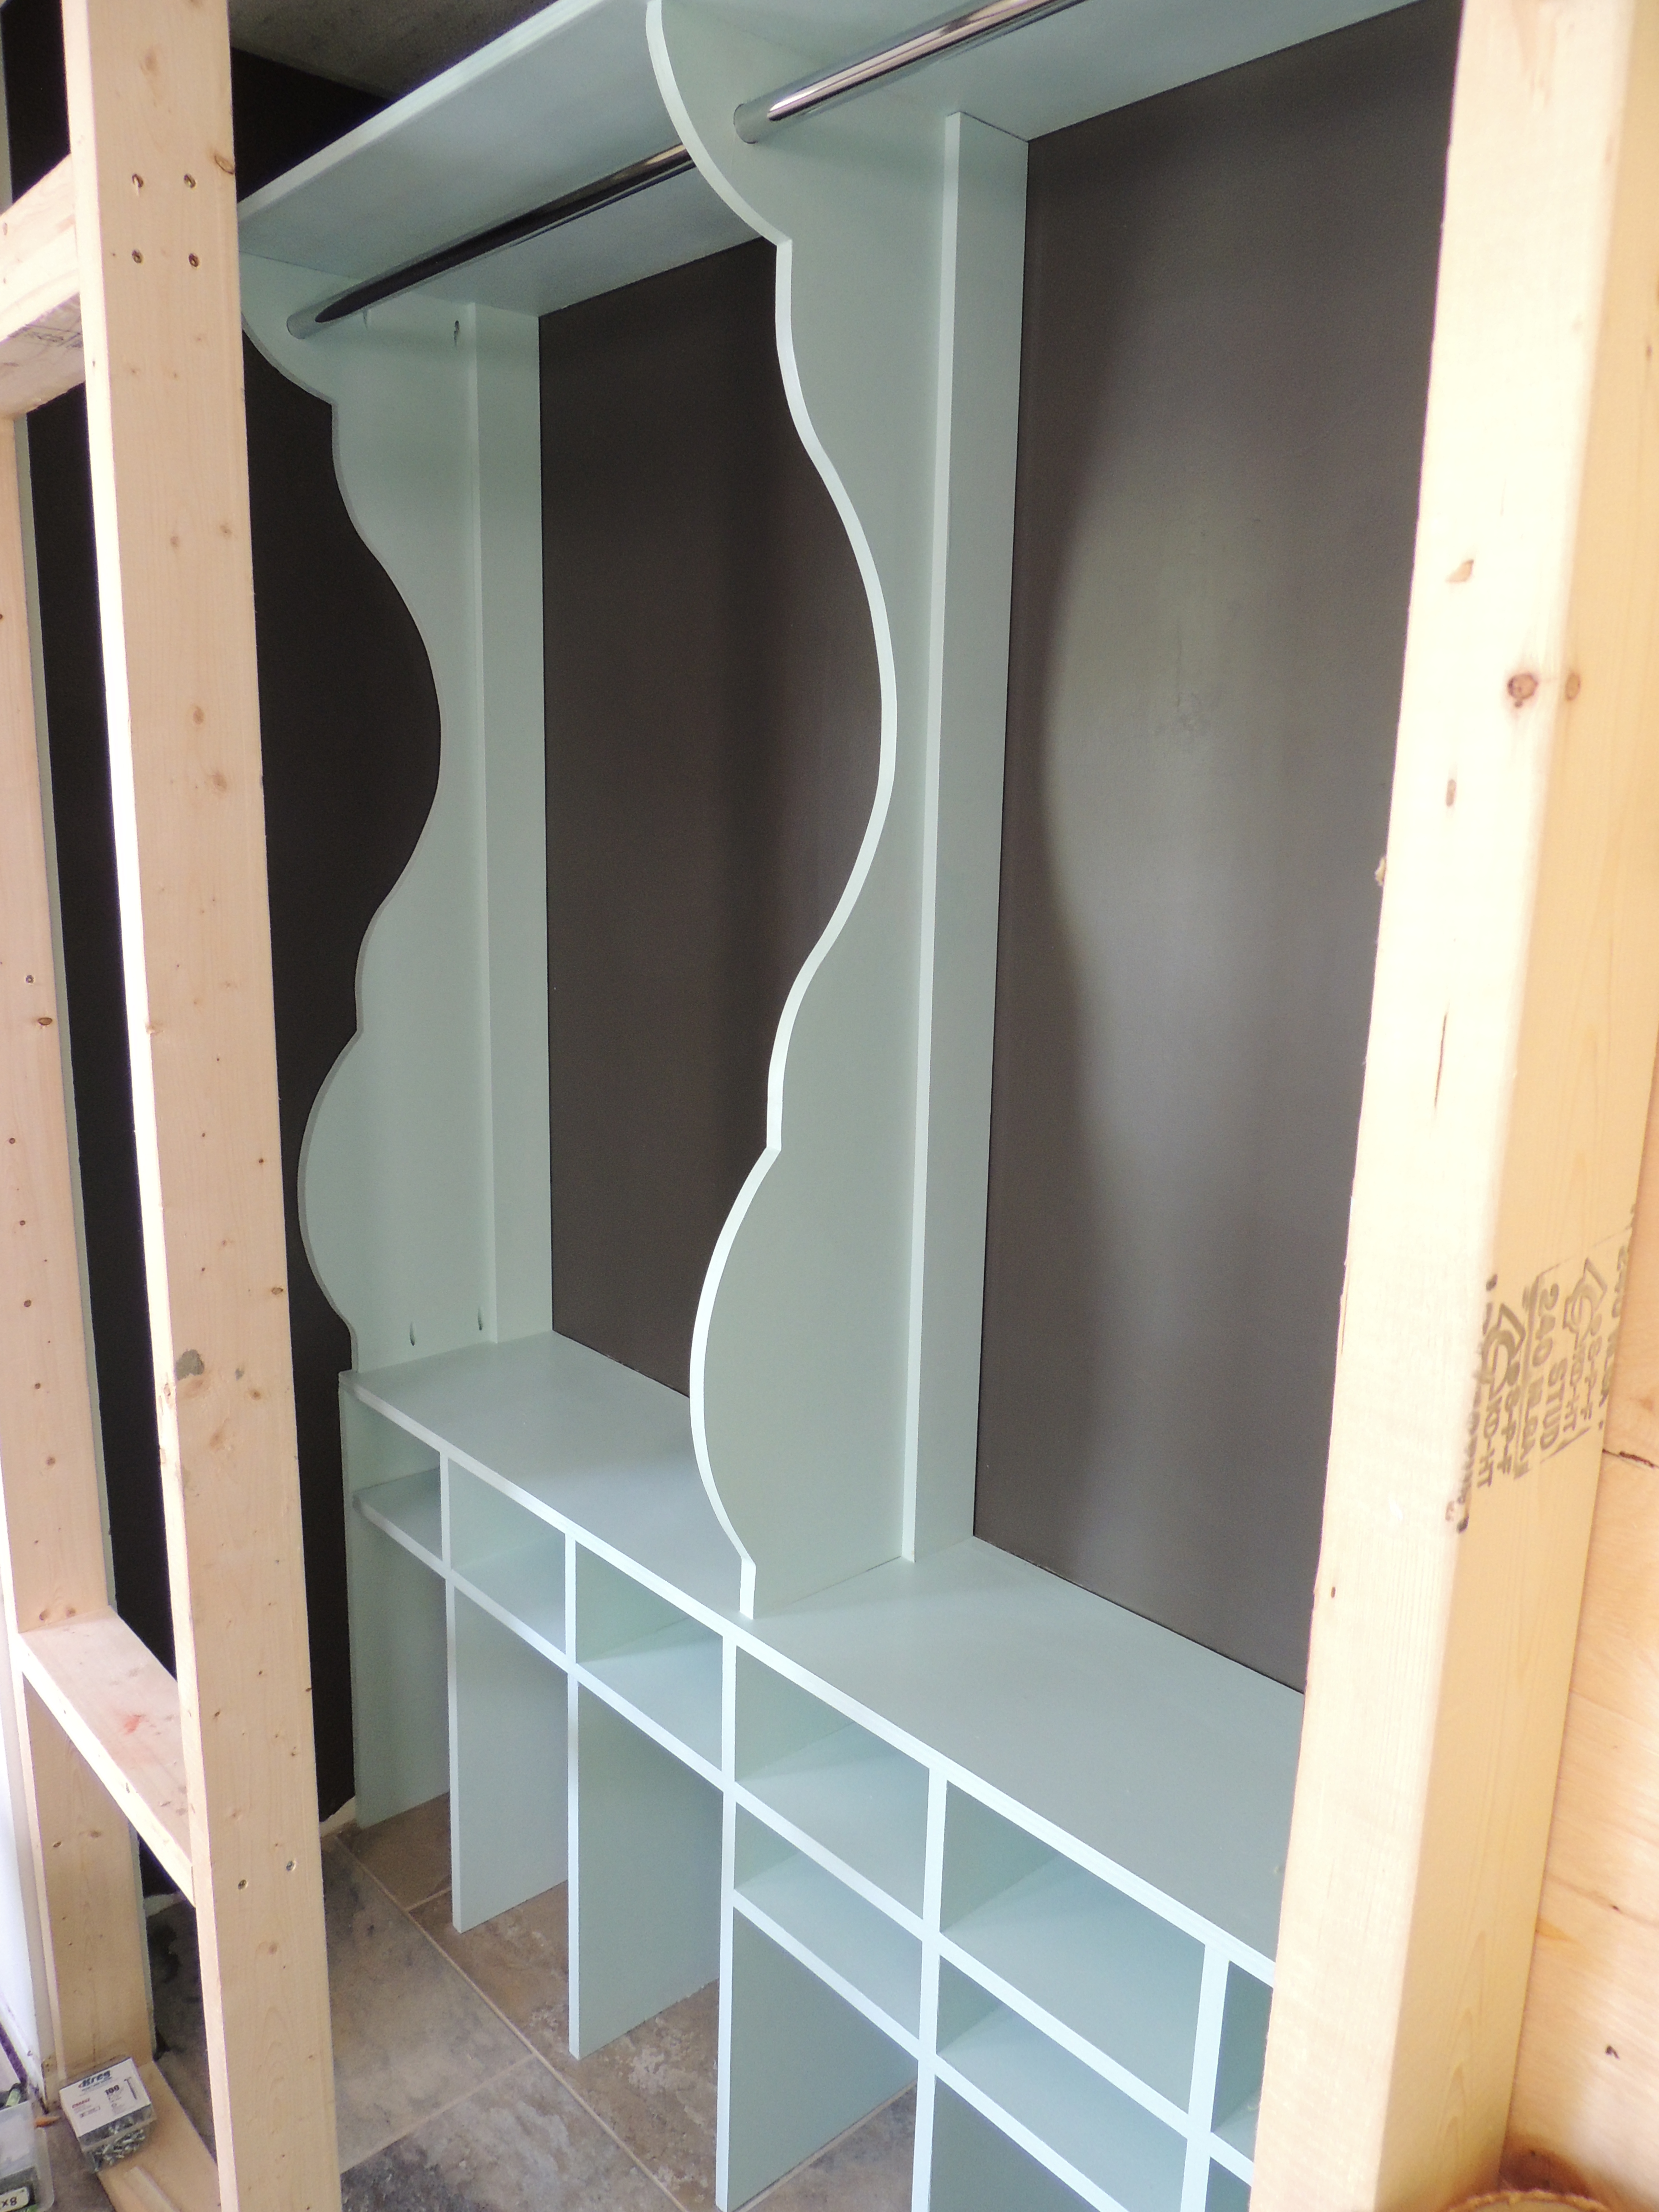 system own closet organizer shelves build plans photos image your of making diy plywood